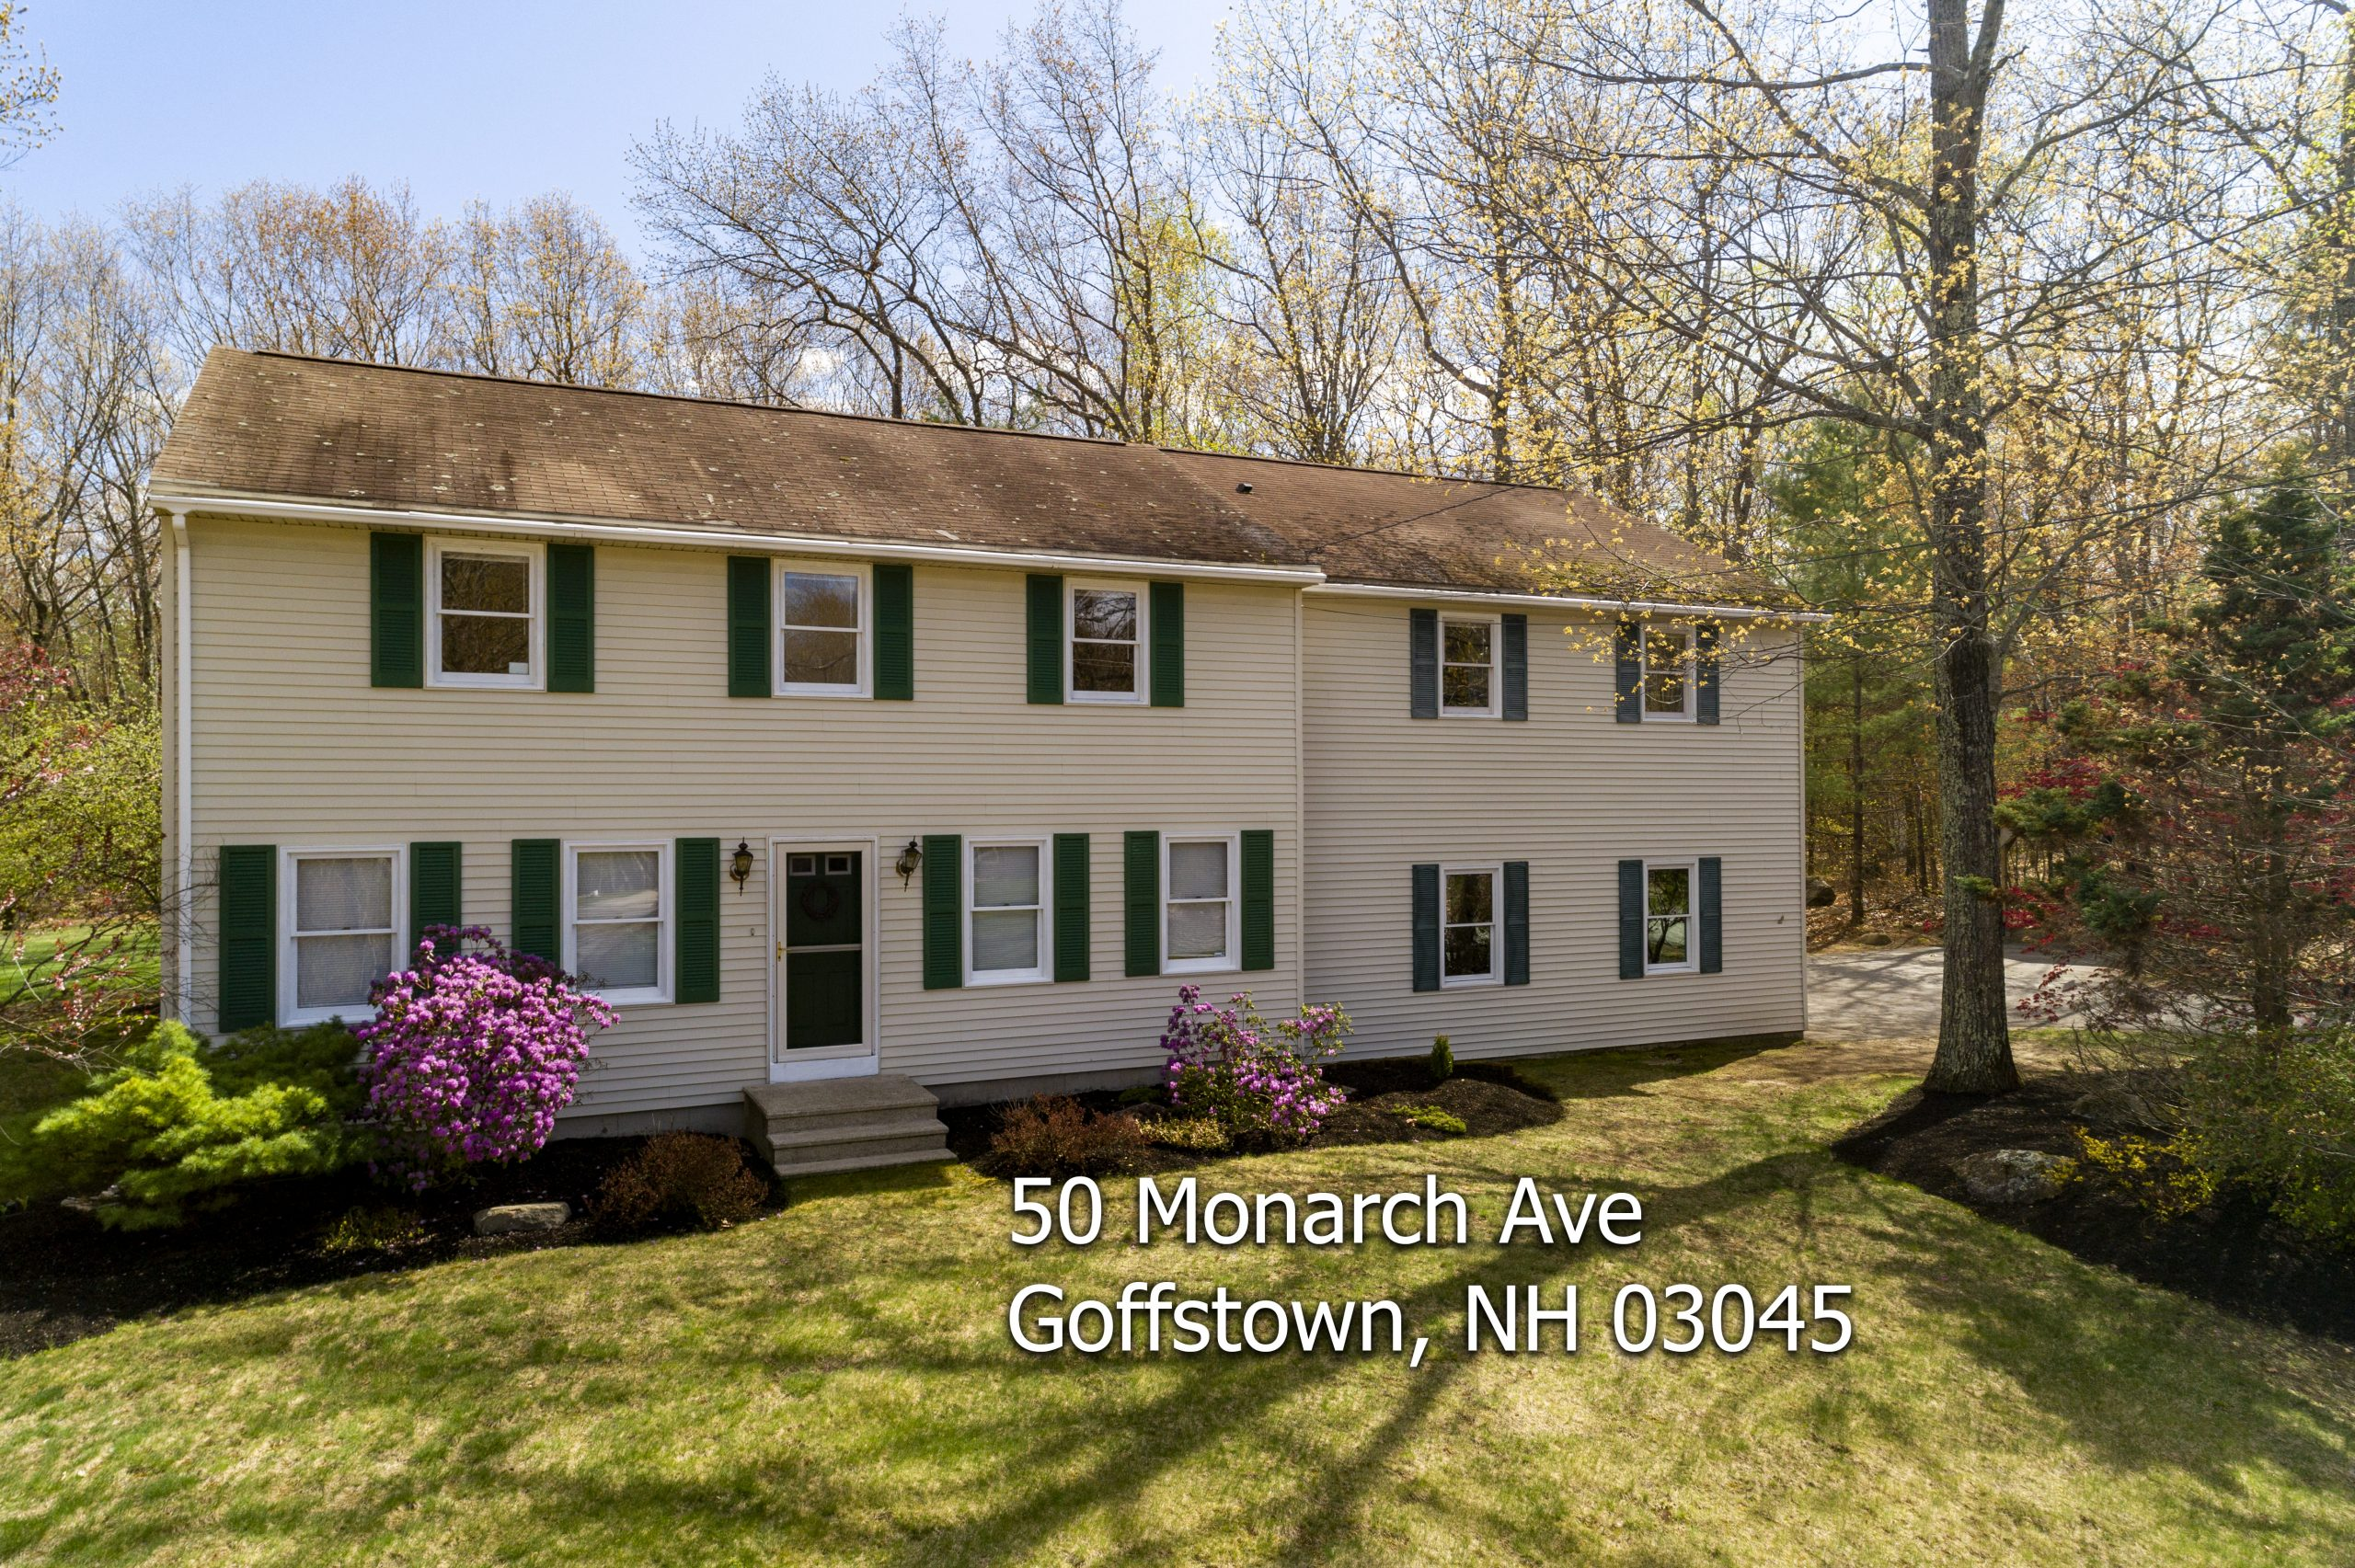 50 Monarch Ave Goffstown NH 03045